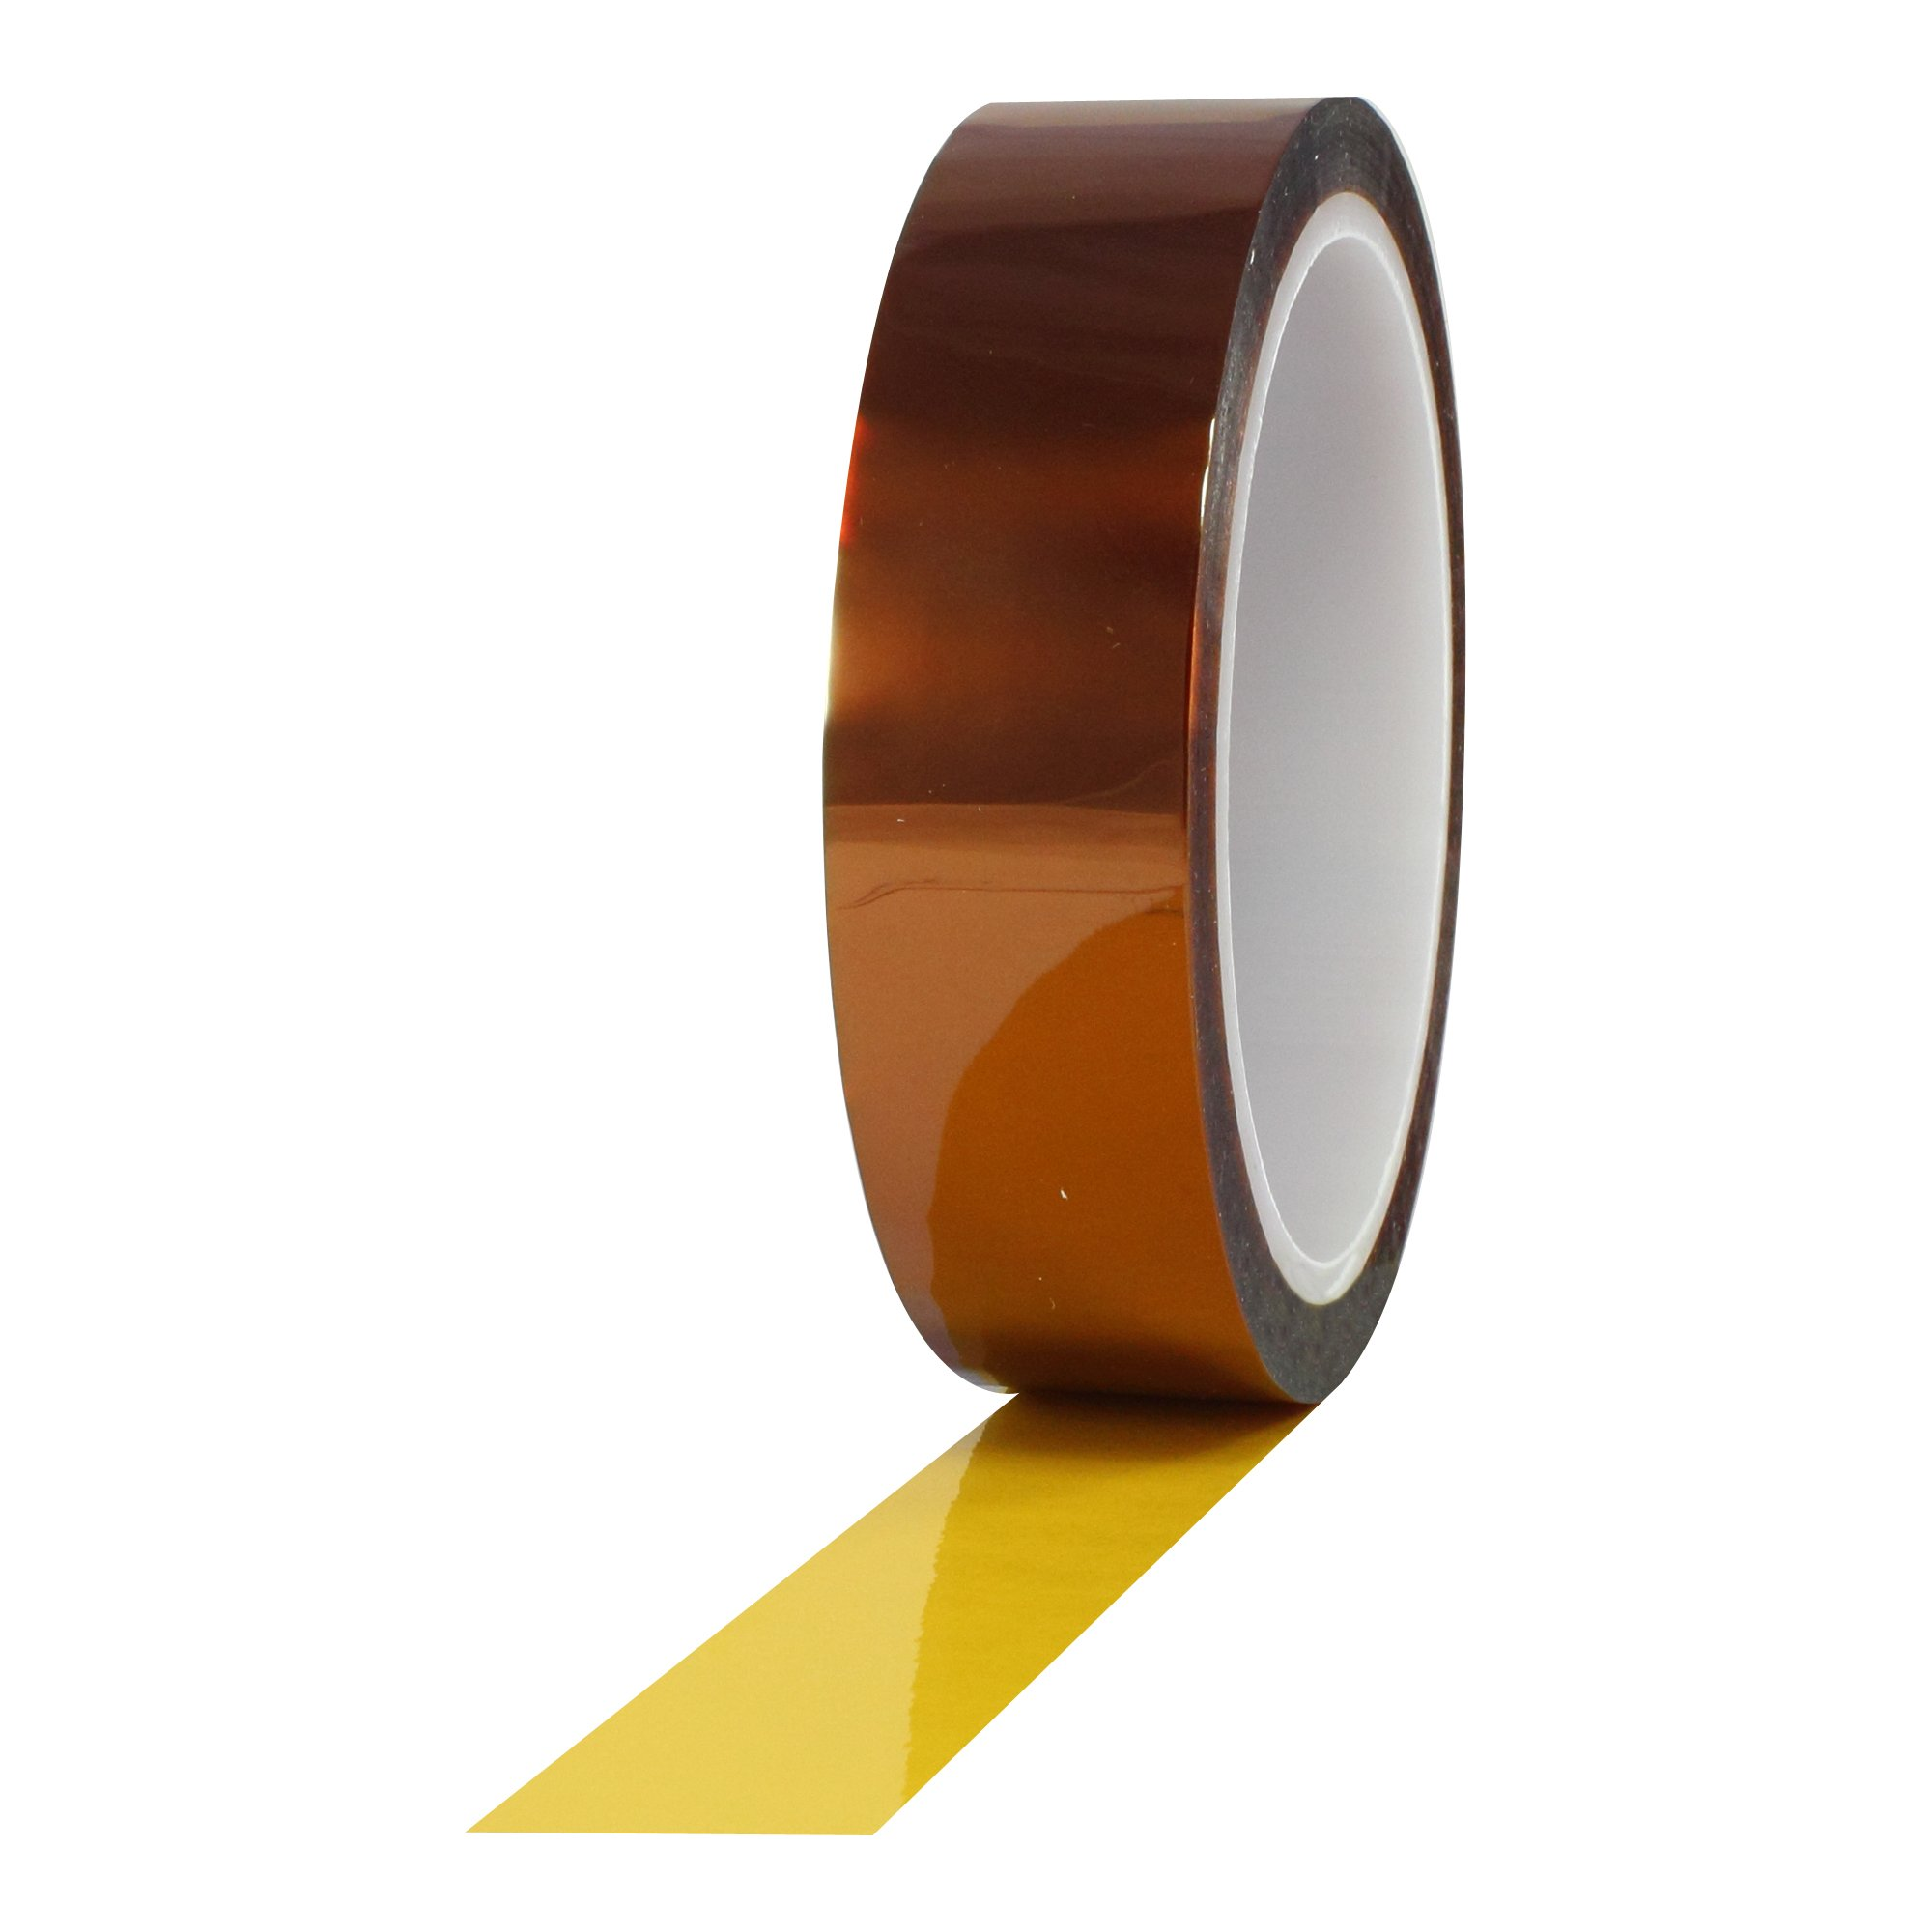 ProTapes Pro 950 Polyimide Film Tape, 7500V Dielectric Strength, 36 yds Length x 1/2'' Width (Pack of 1)